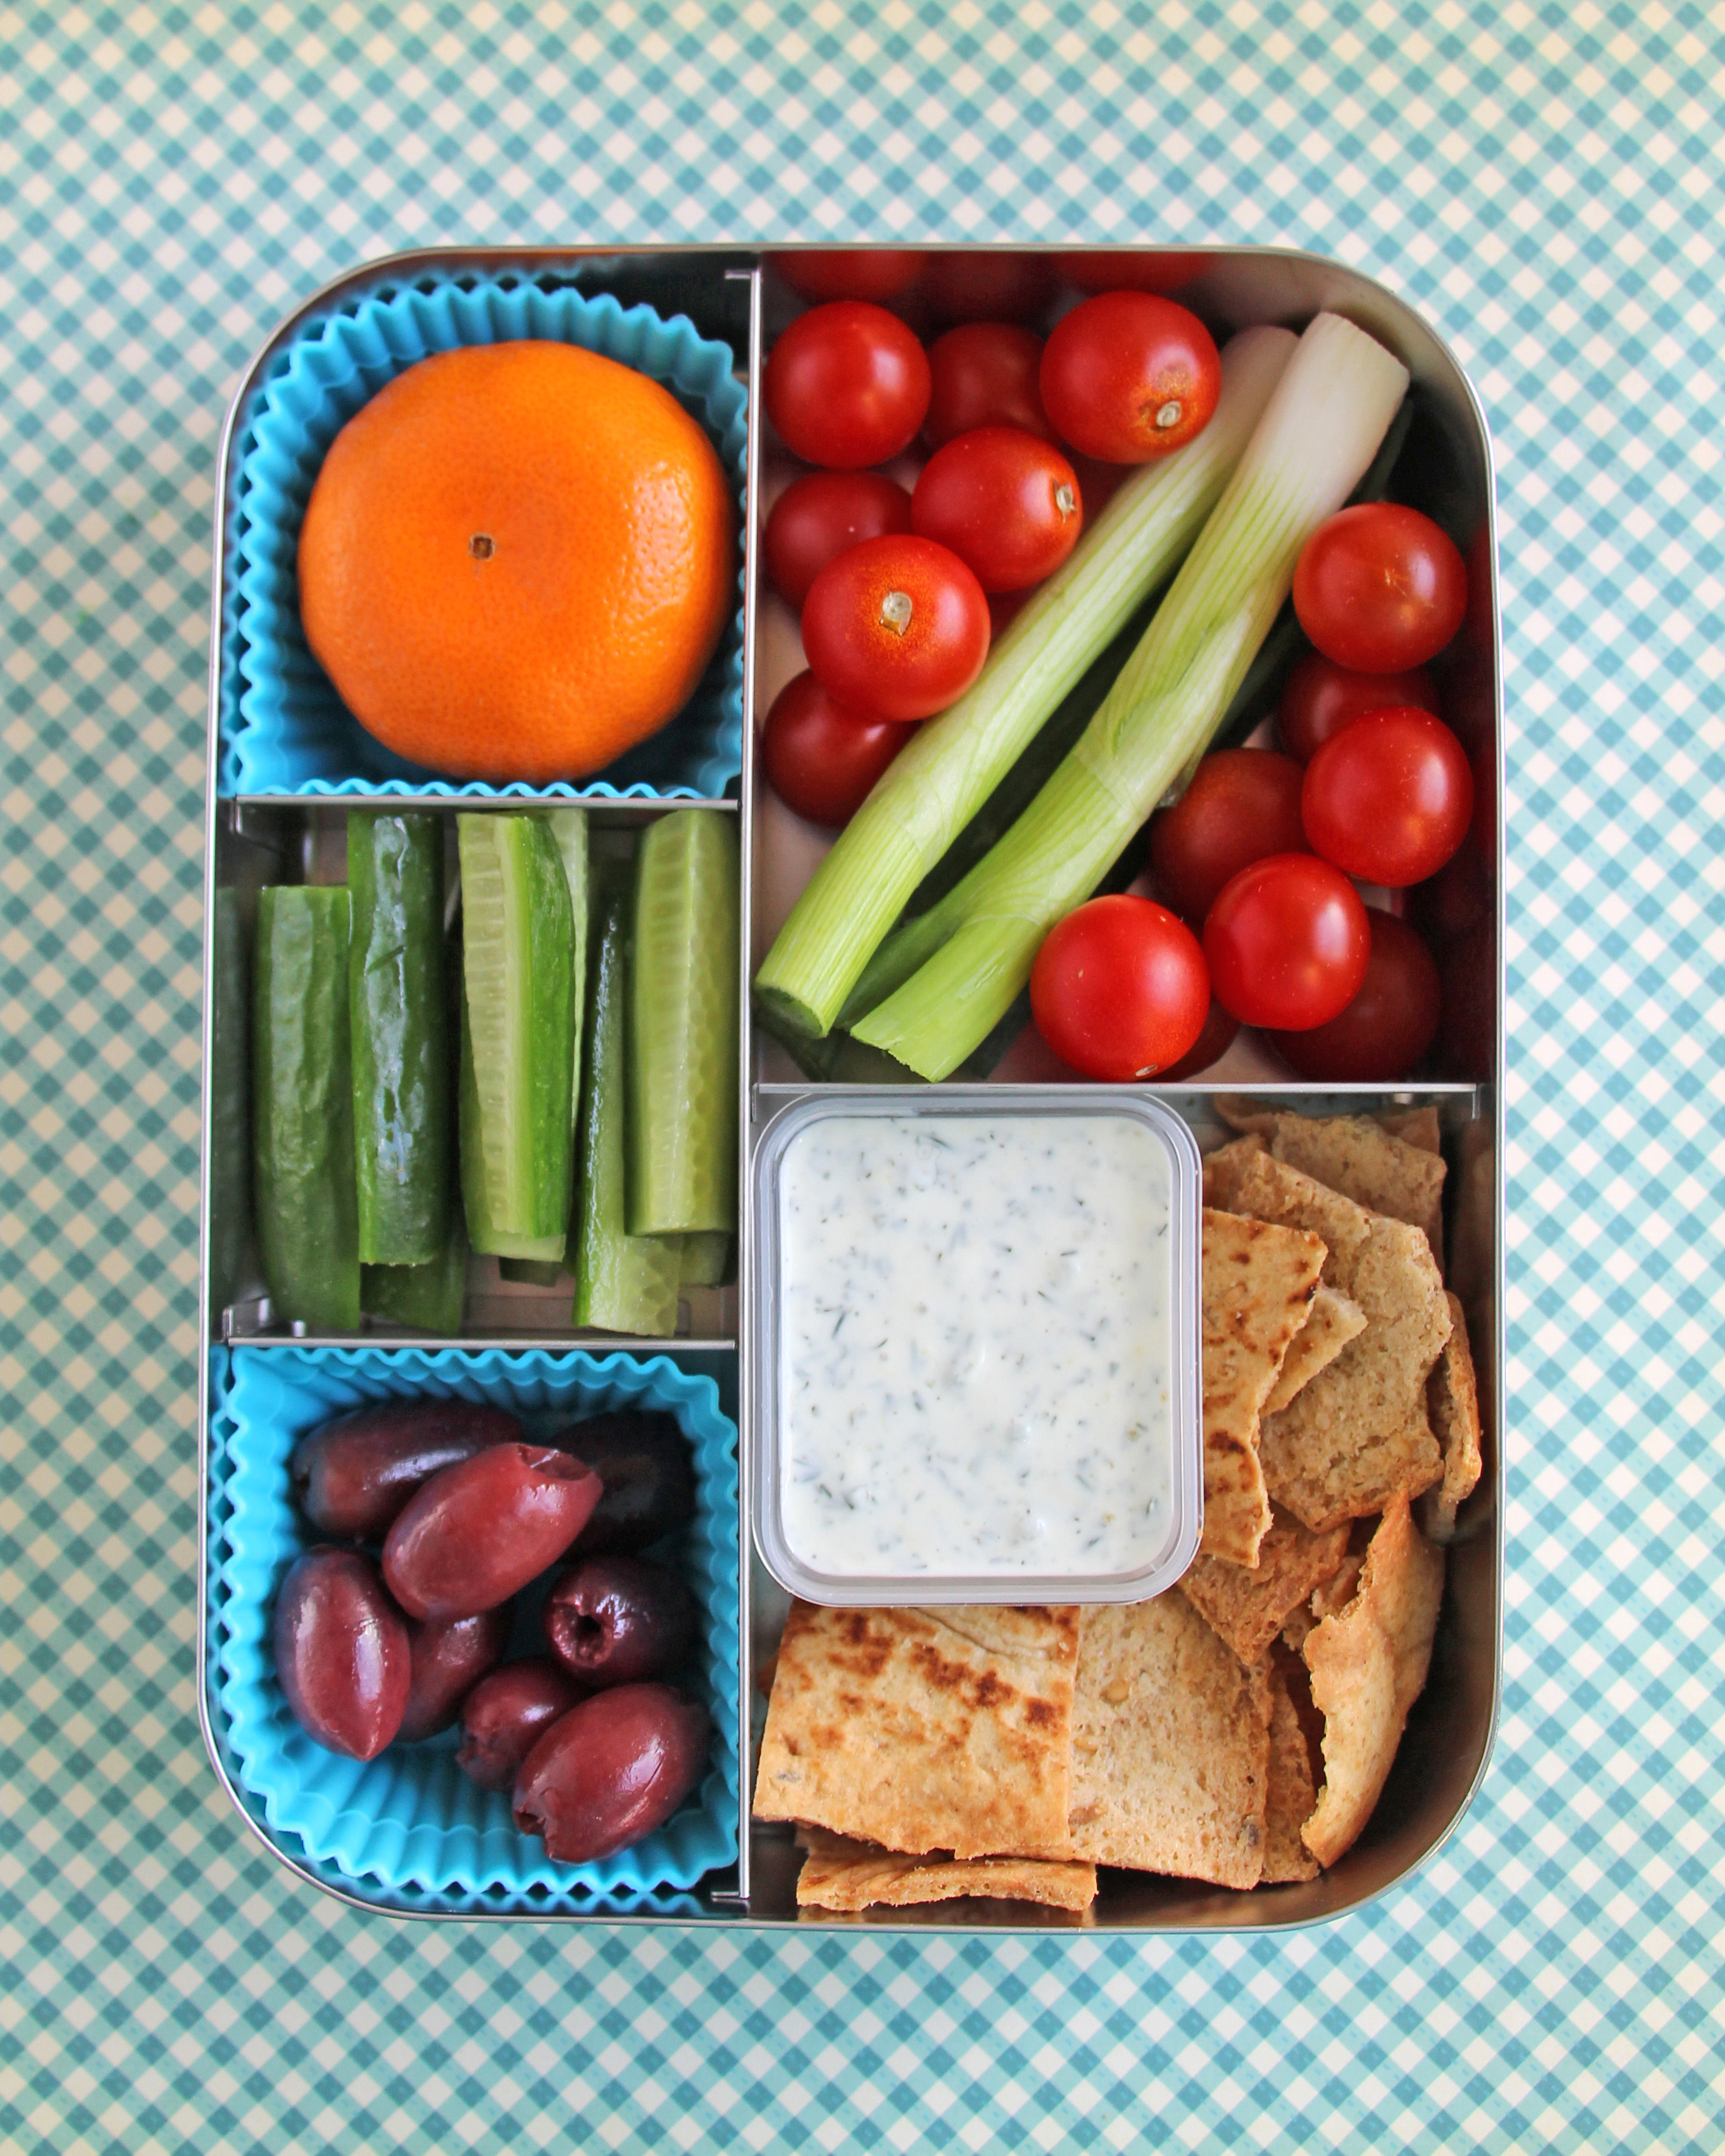 bento box greek dippers pita tzatziki veggies olives